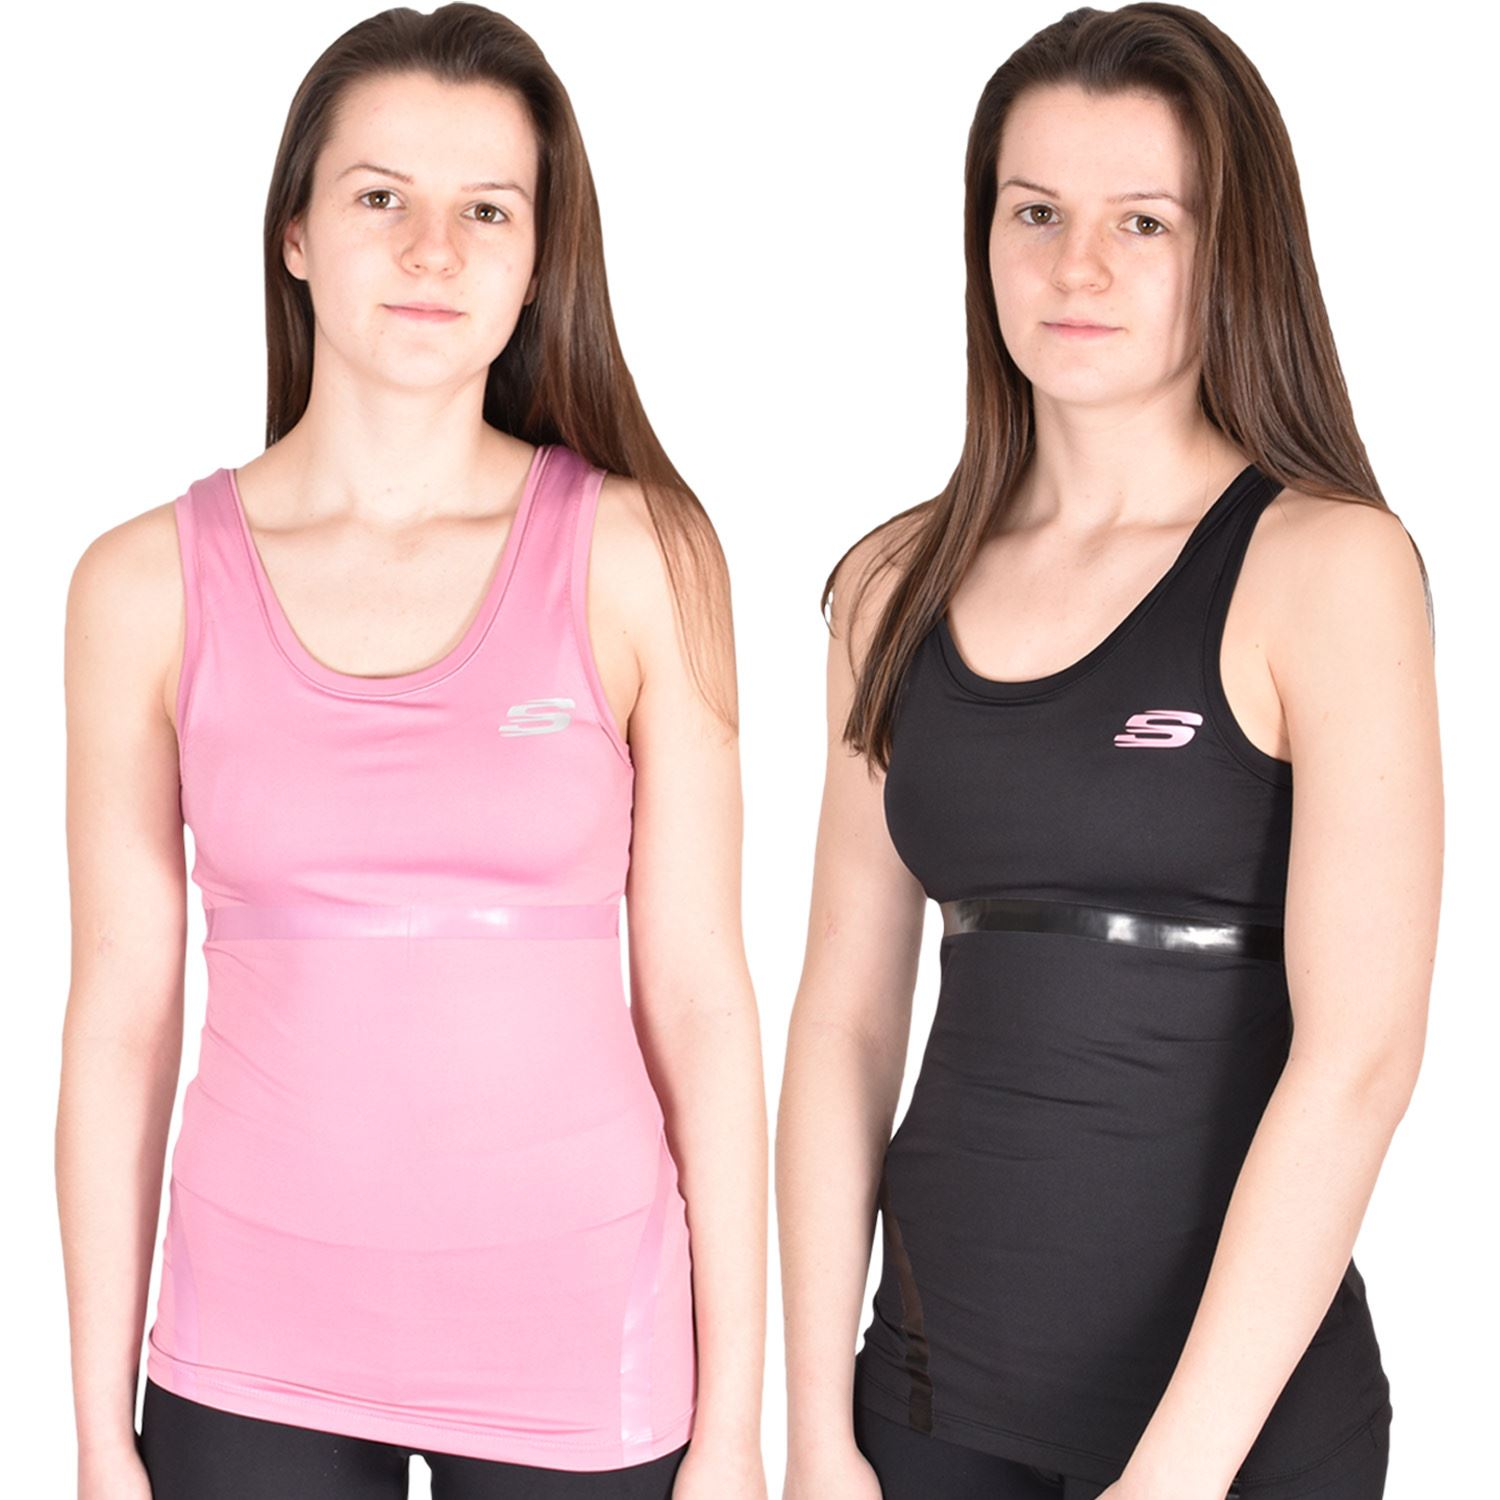 Details about Skechers Womens Vest Gym Support Bra Ladies Activewear Tops  Sports Fitness Yoga 4568e9598c8f